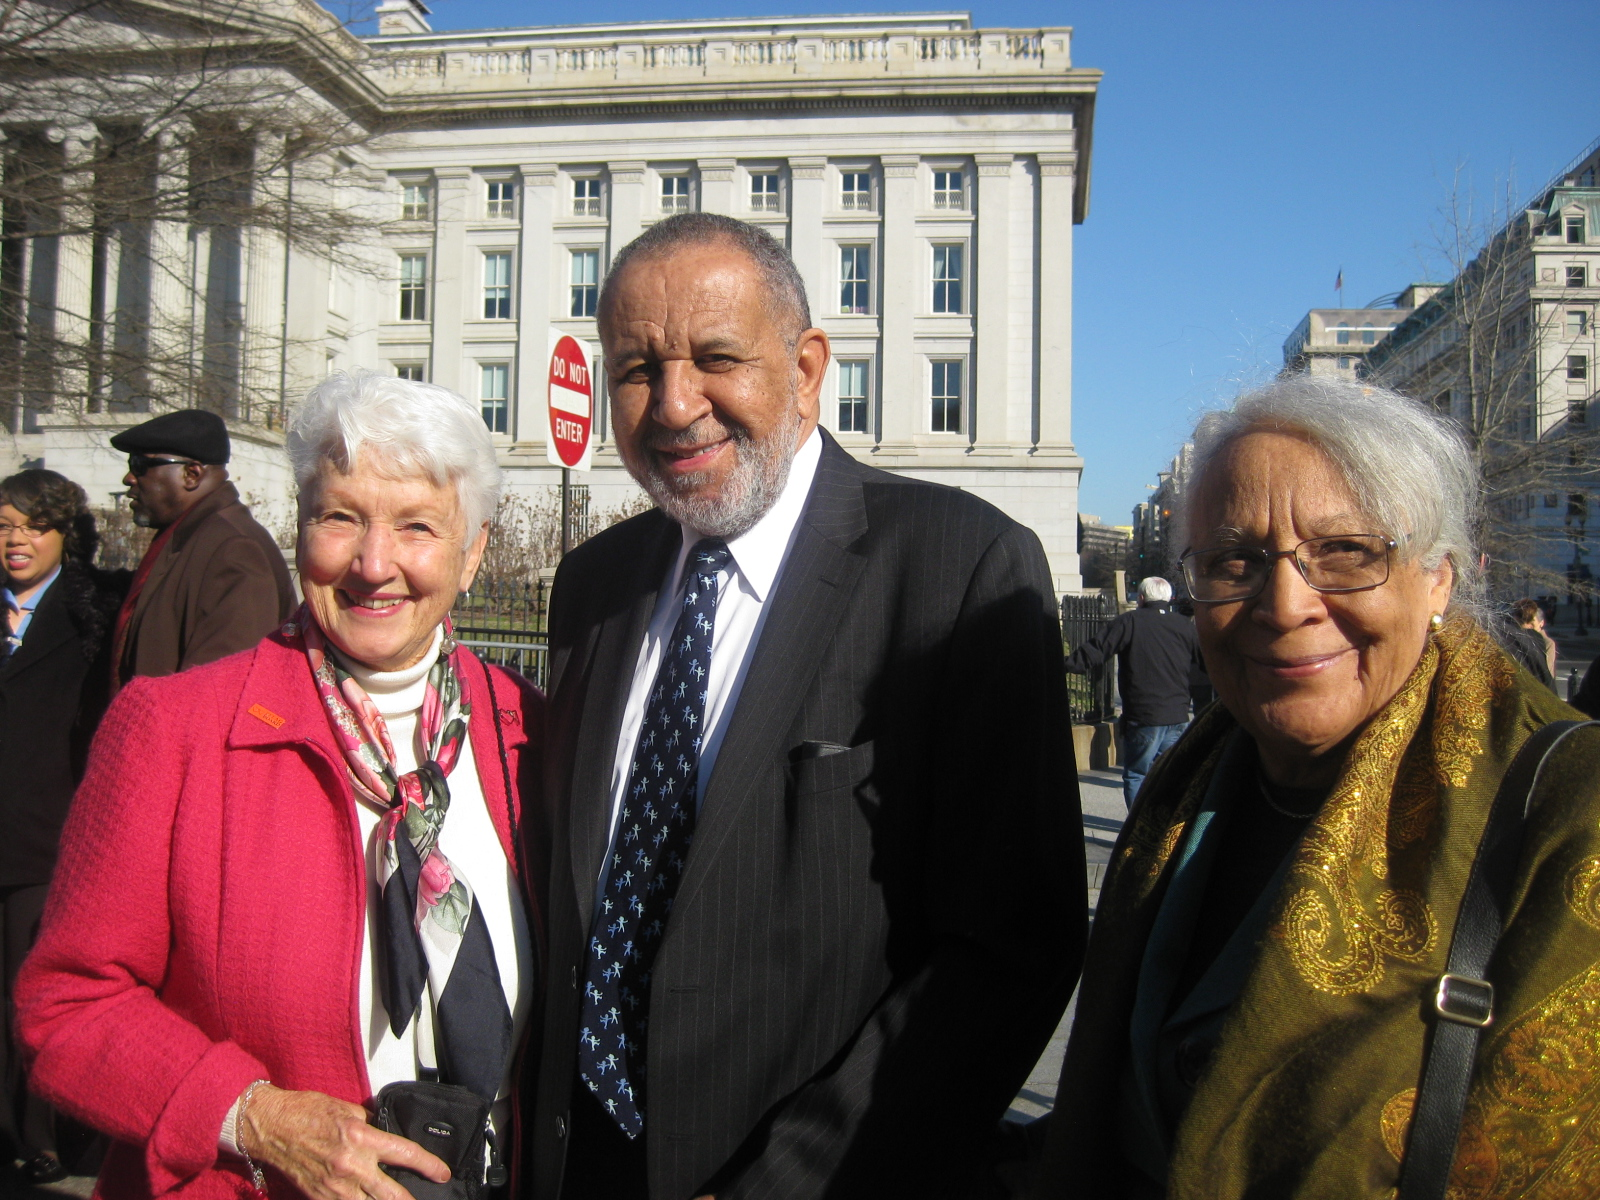 Jean Hodges, Vice-President of National PFLAG Board, with Gil and Grace after the Presidential Citizens Medal ceremony at the White House.